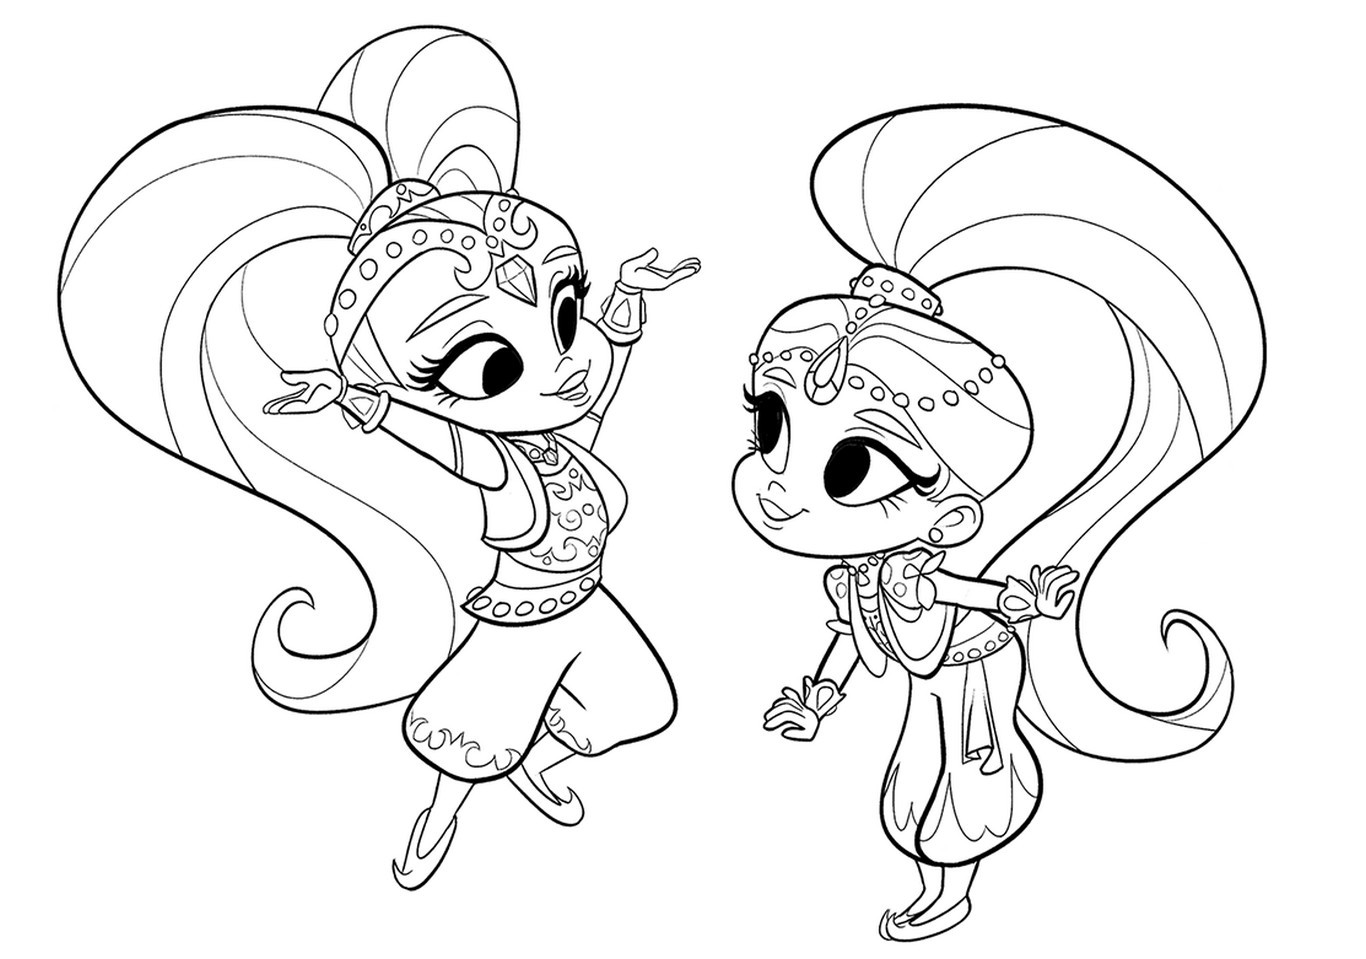 It's just an image of Magic Coloring Pages Shimmer and Shine